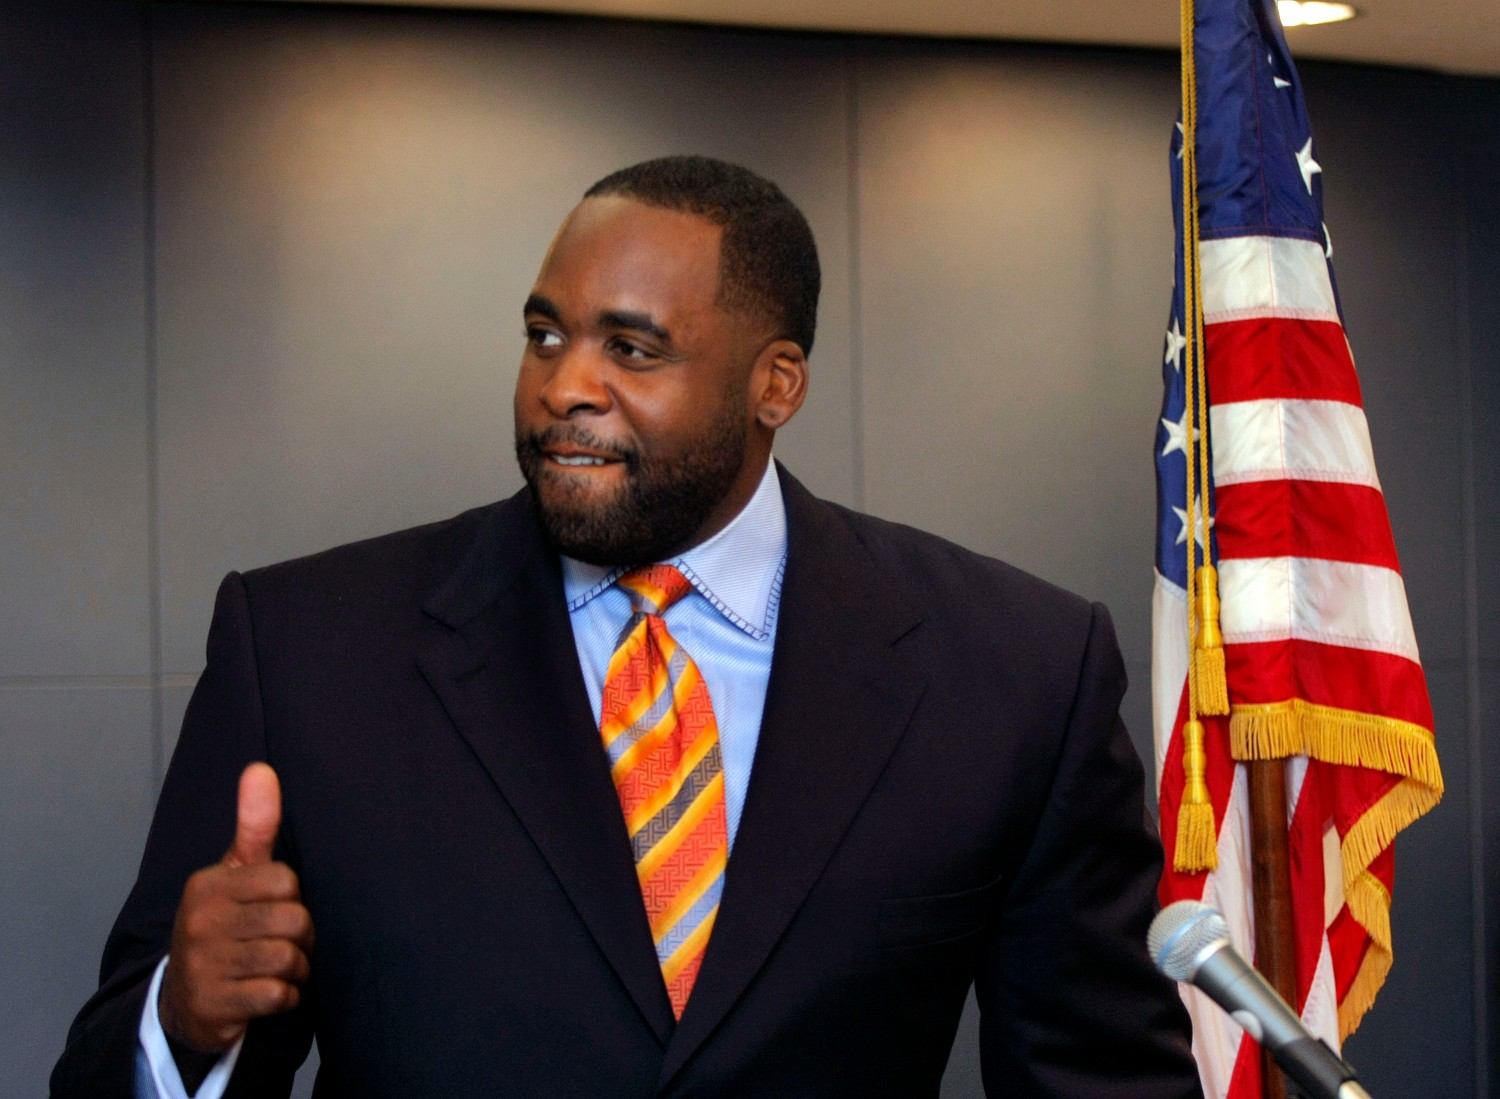 kwame kilpatrick - photo #5